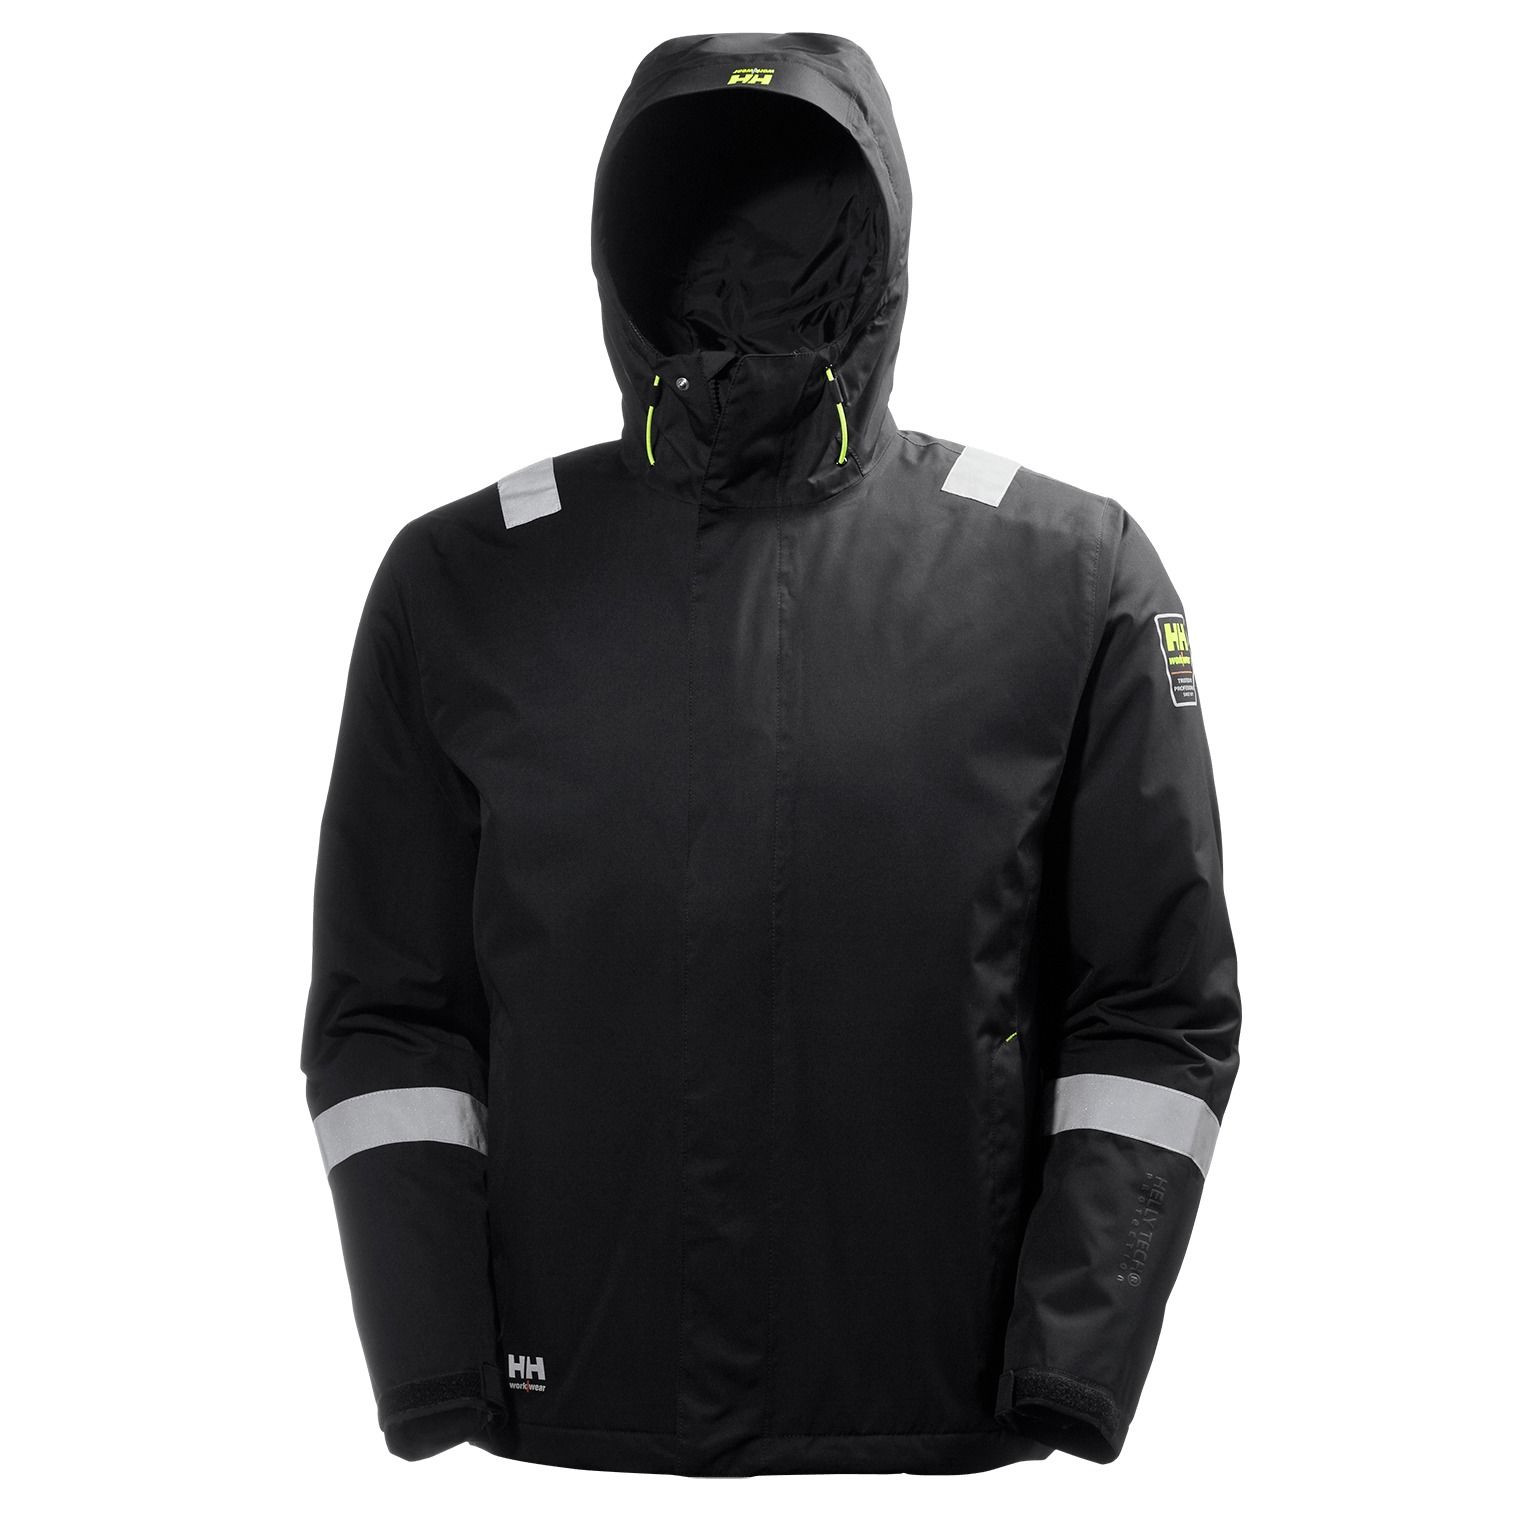 Куртка Helly Hansen Aker Winterjacket - 71351 (Black)